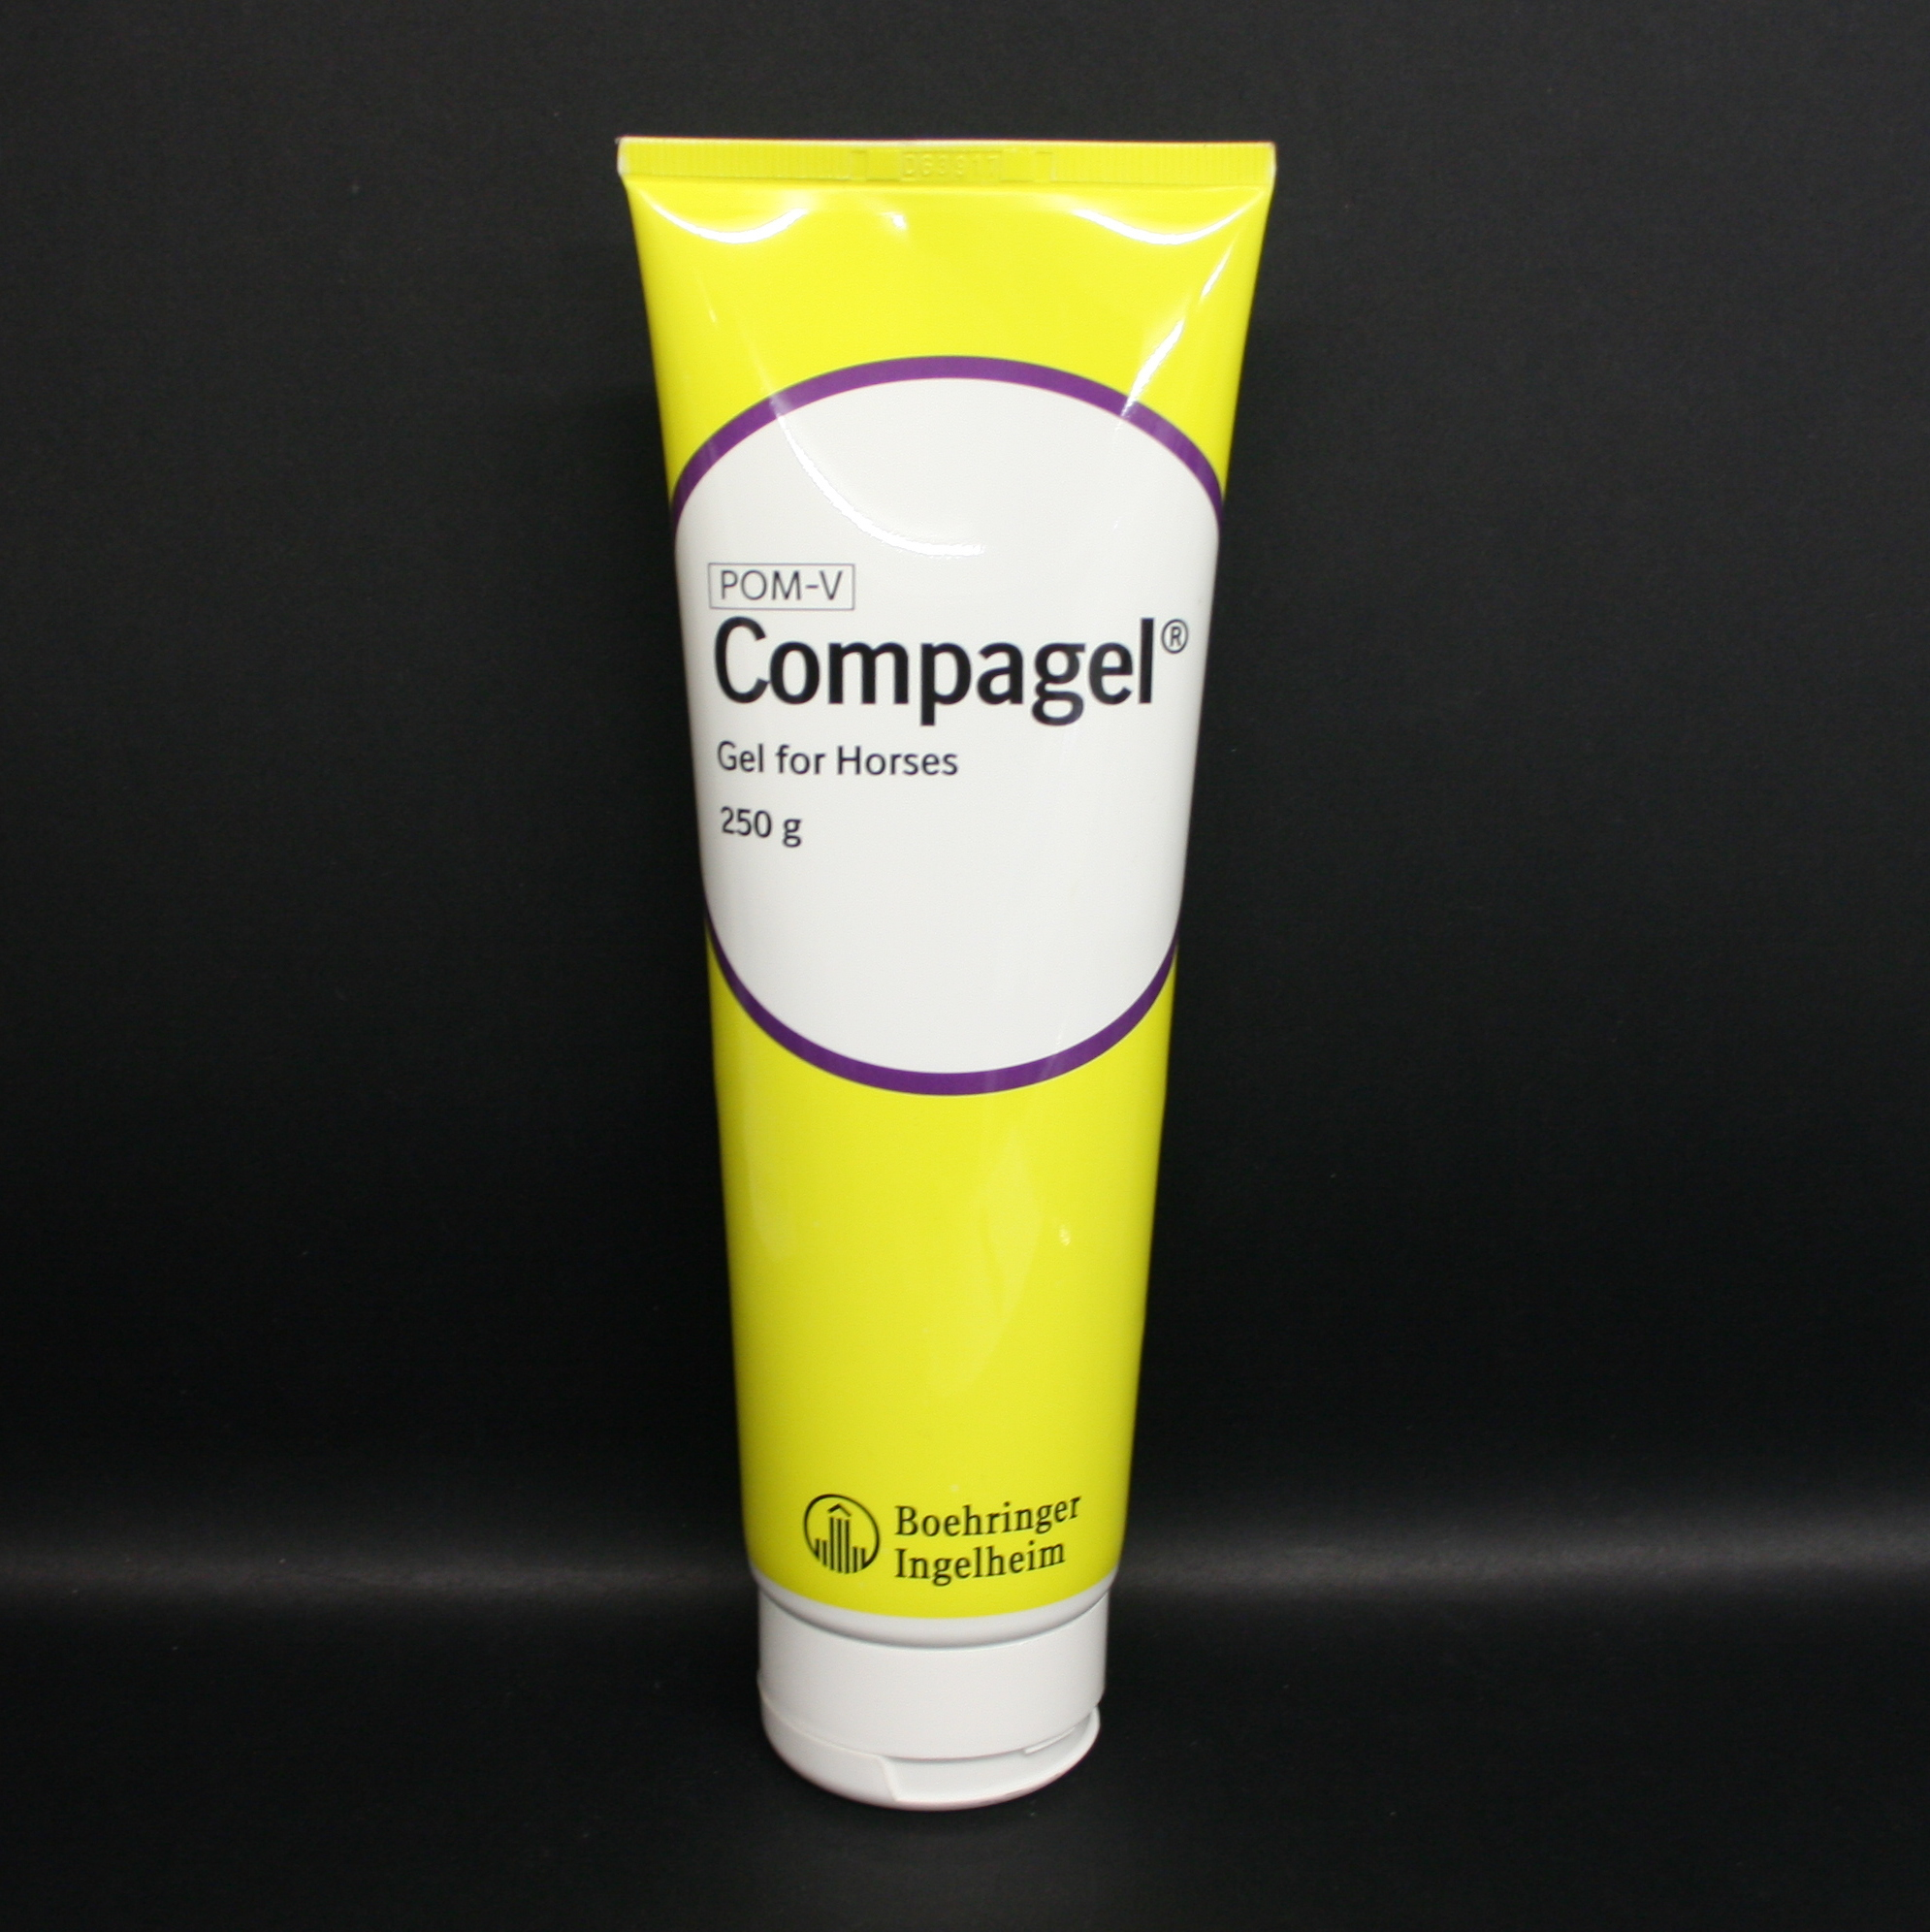 Compagel Gel for Horses 250g